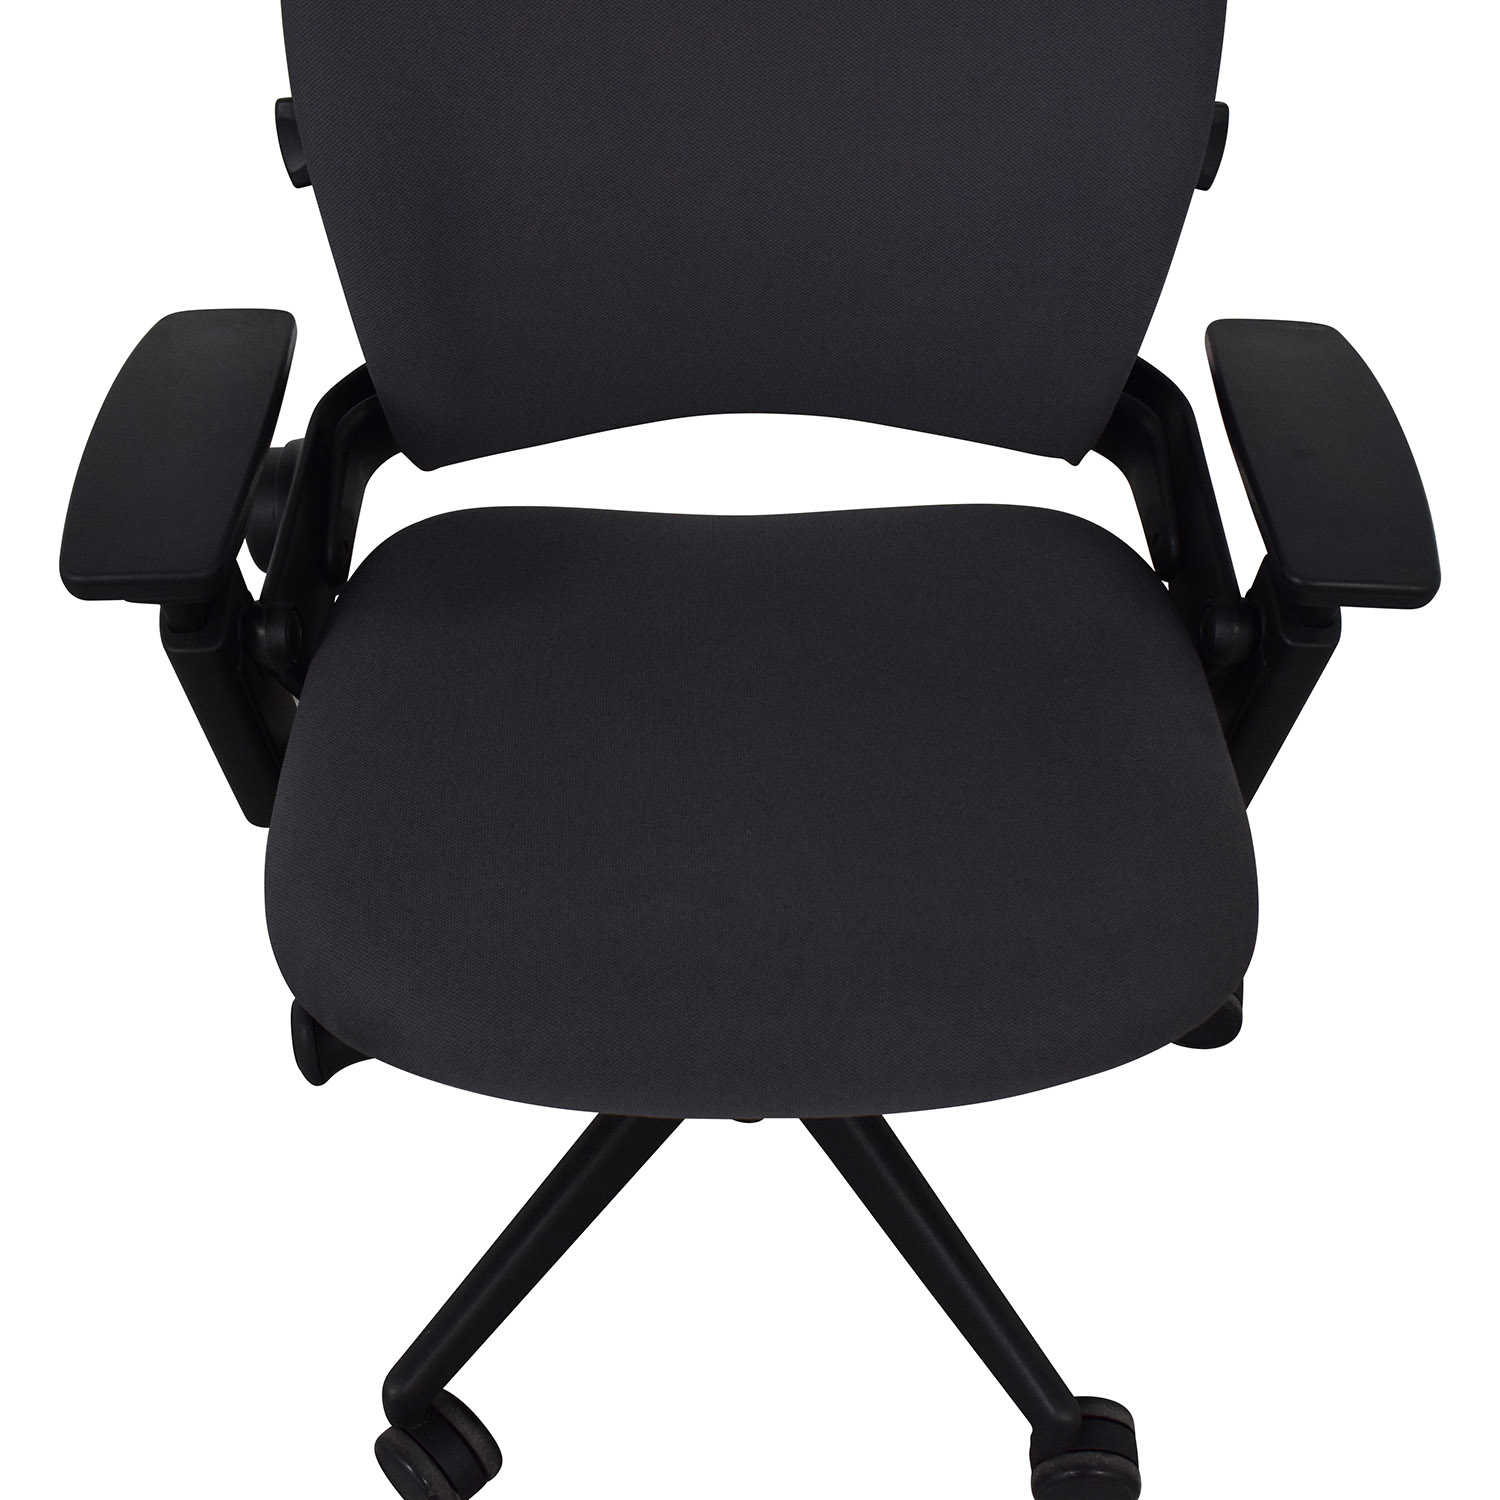 Steelcase Steelcase Leap Chair second hand